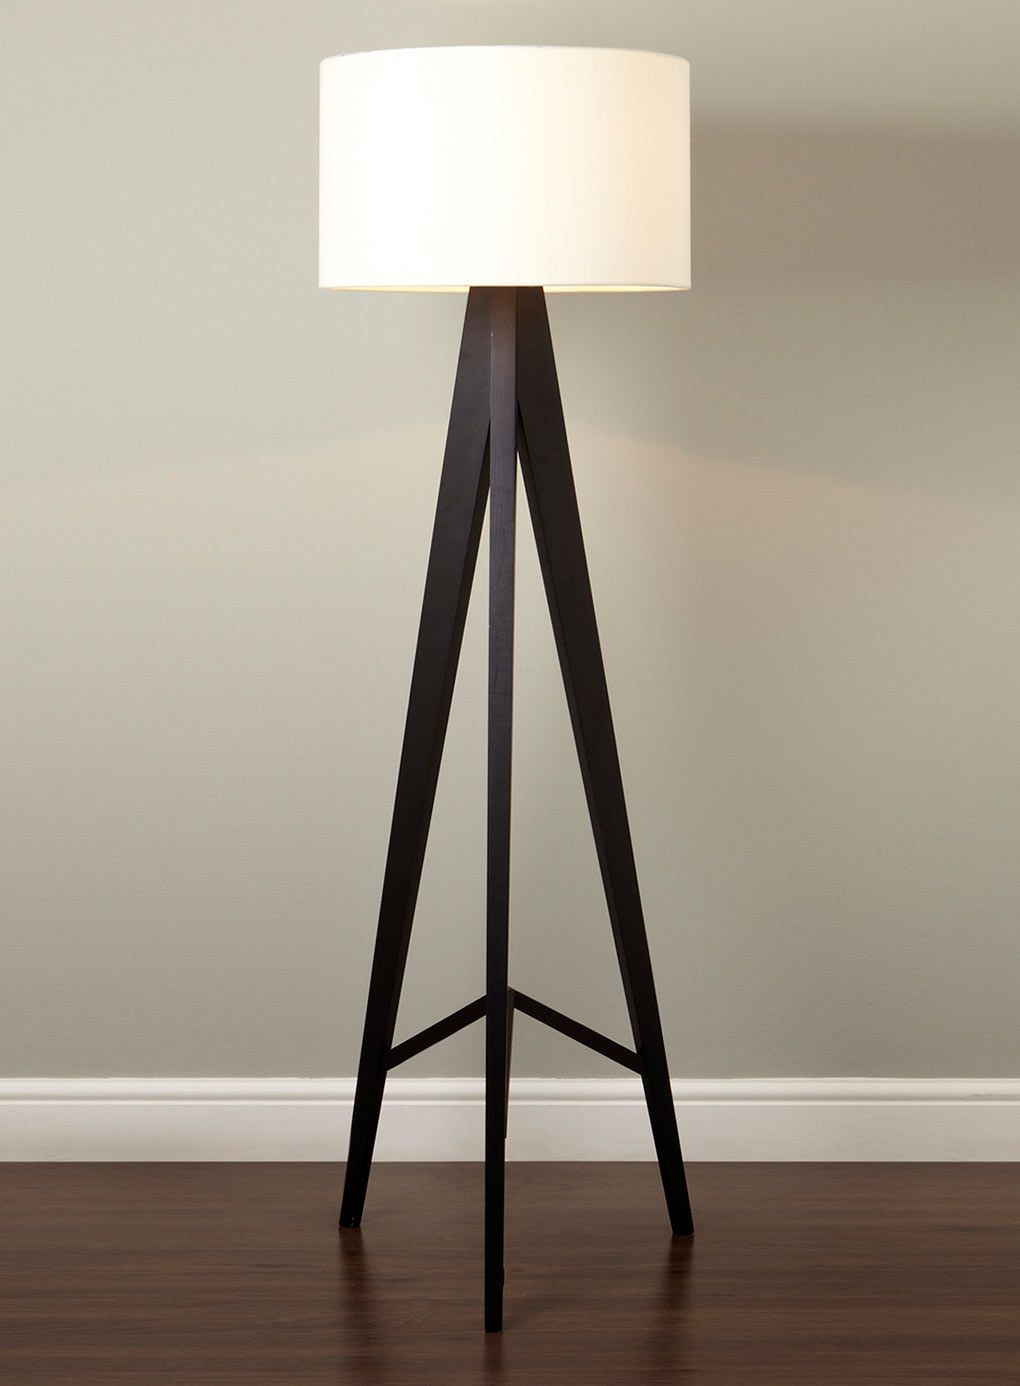 tripod floor lamp design inspiration come with cream scheme drum shaped shade lamp and 3 black stained wooden tripod floor lamp legs also white grey painted